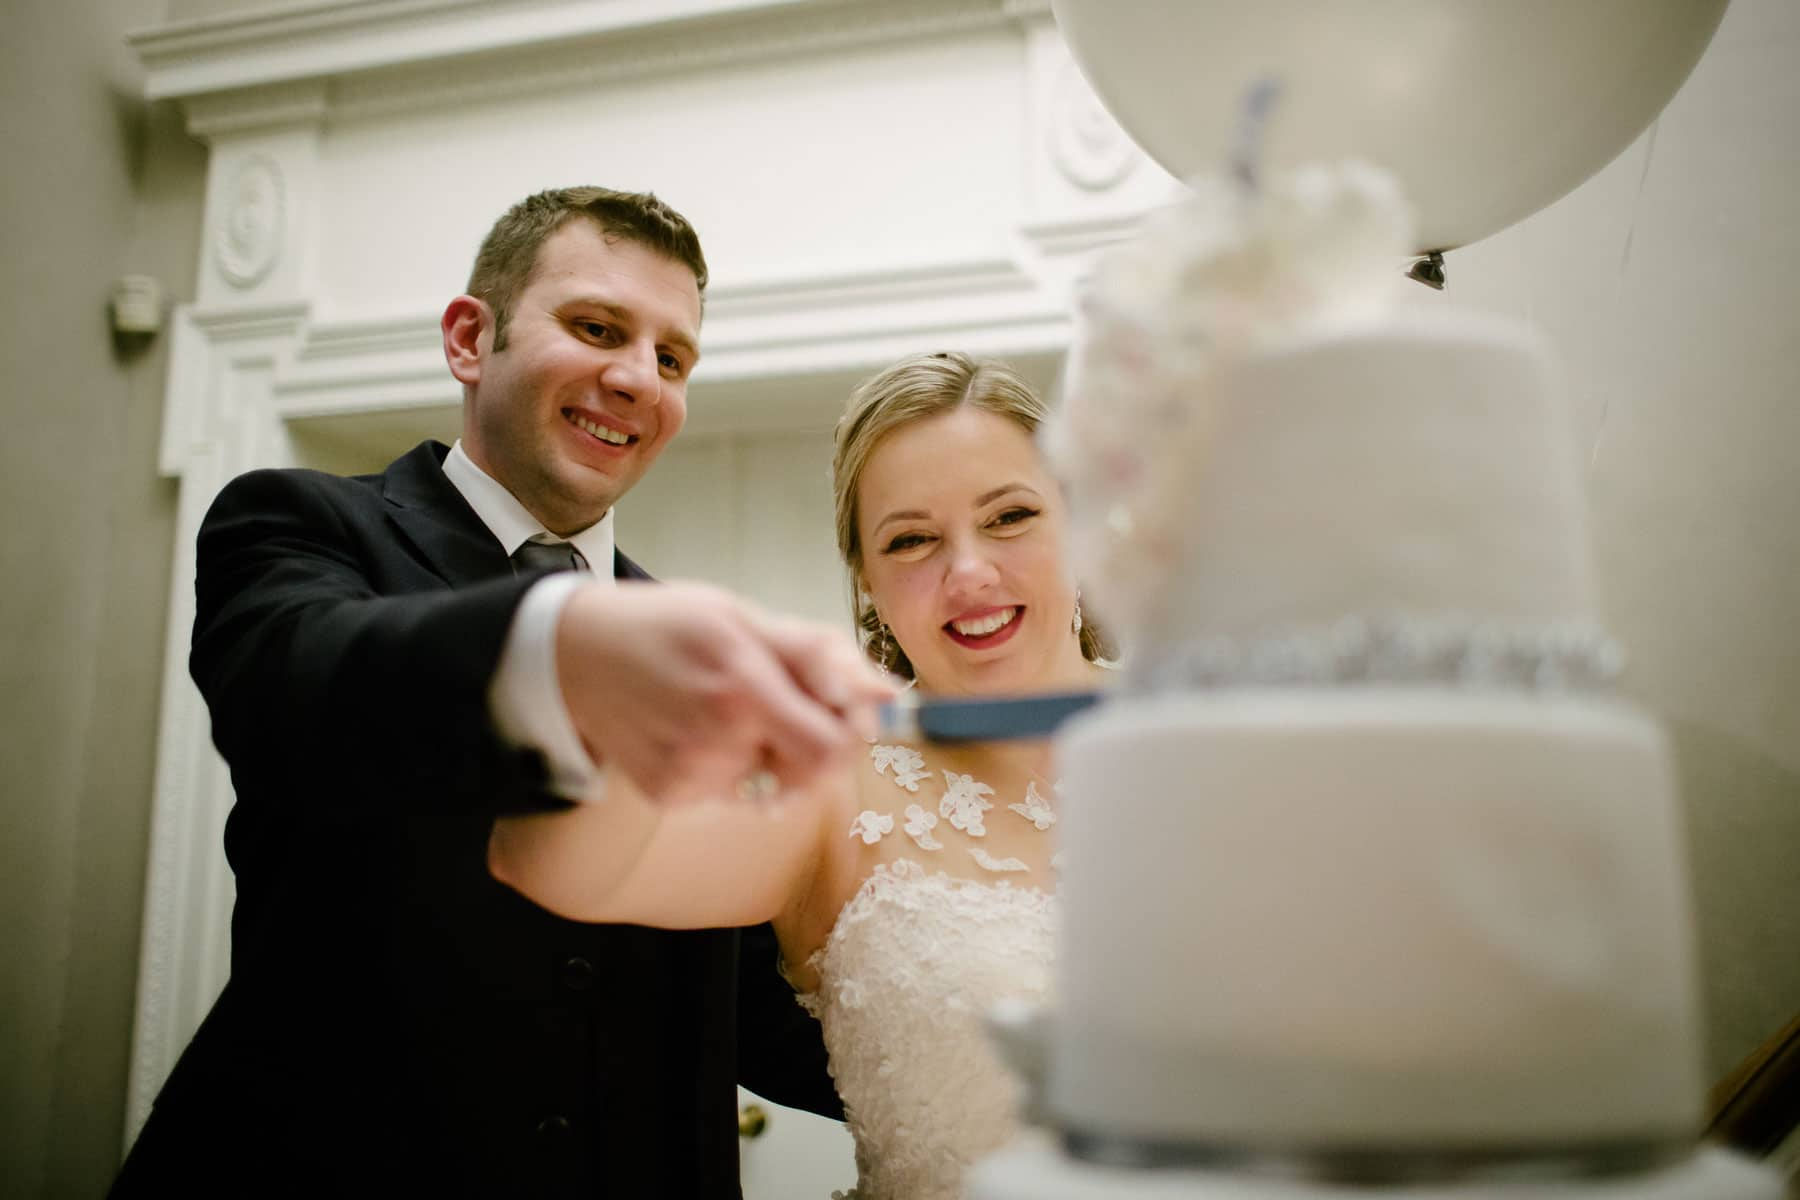 Bride and groom smiling and cut the wedding cake at McClain House, Estates of Sunnybrook.